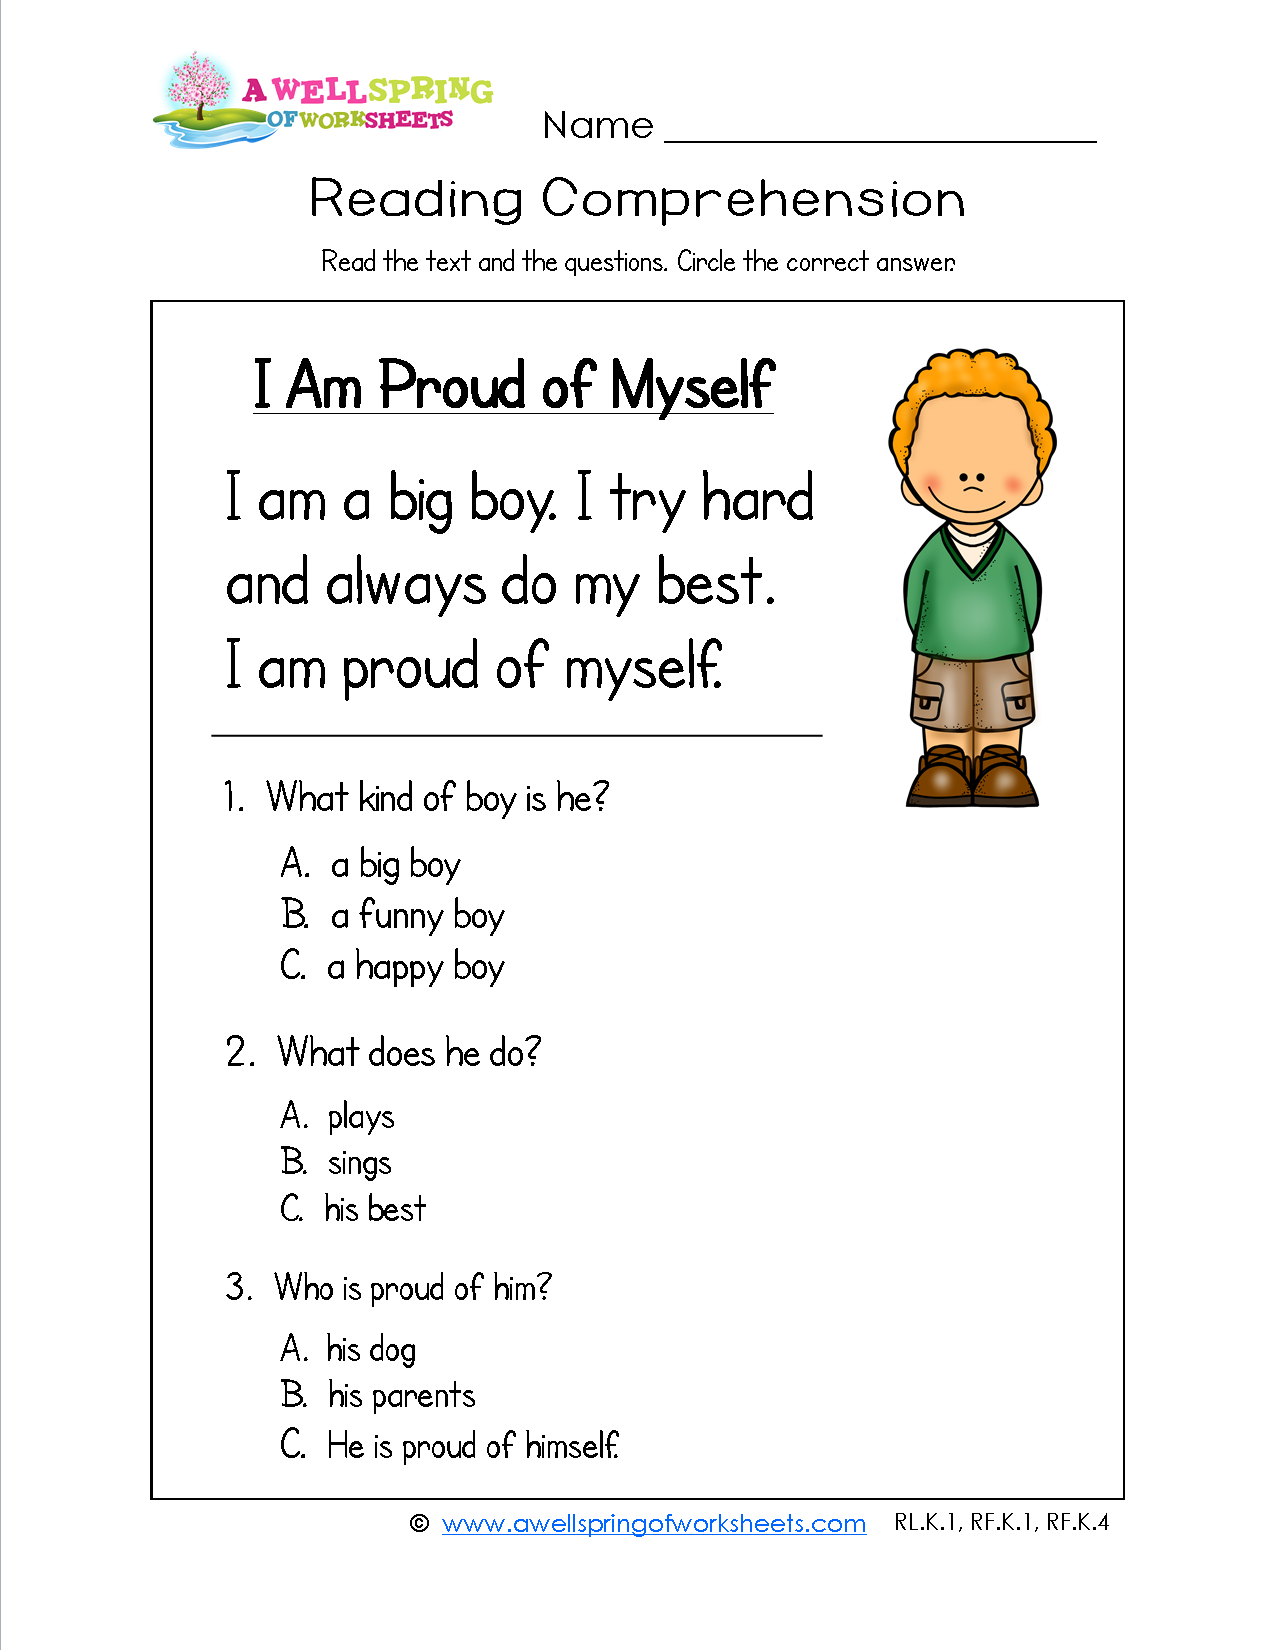 Kindergarten Reading prehension Every kid needs to feel proud